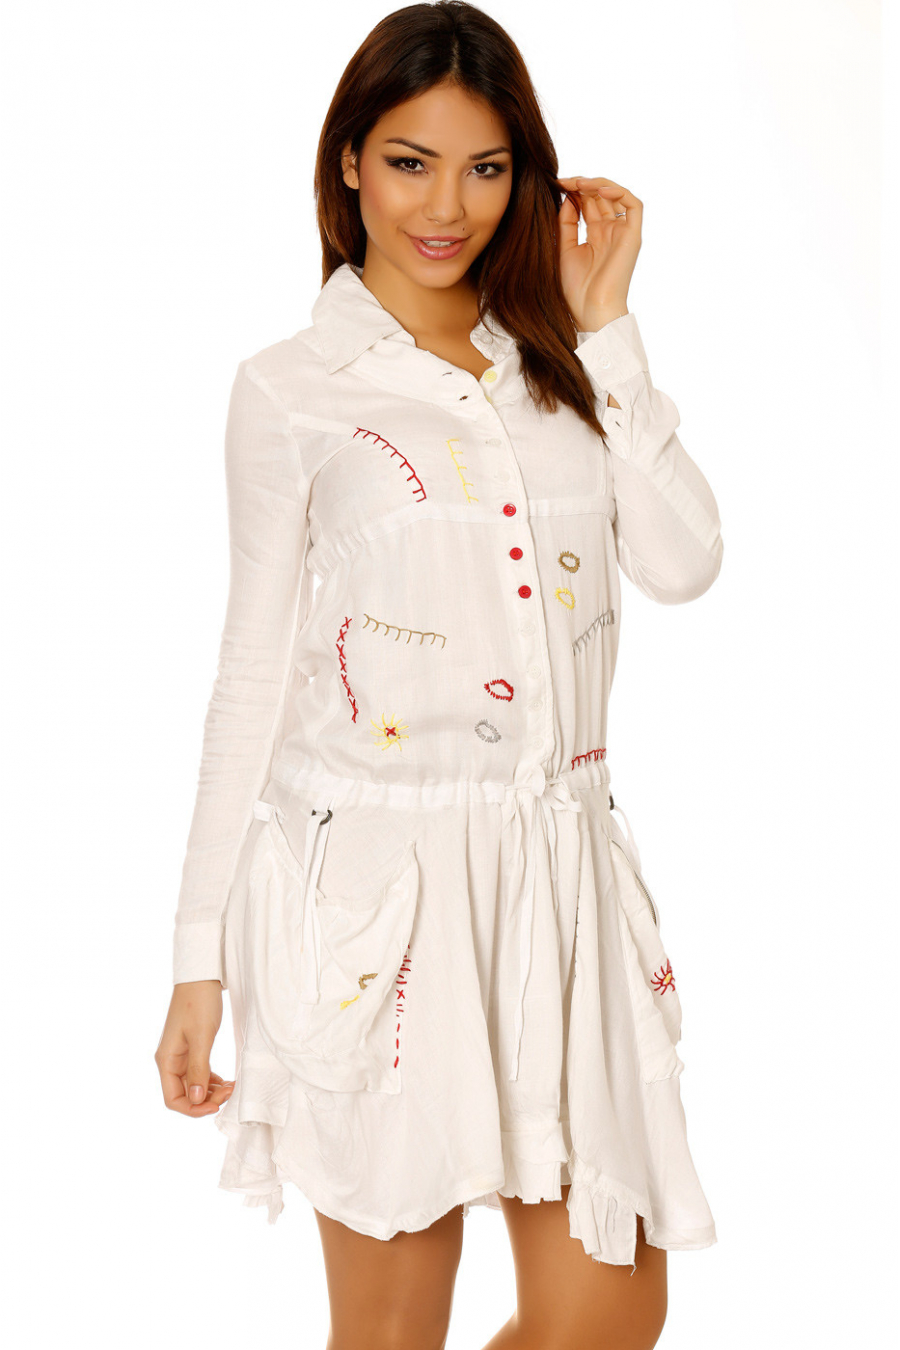 White buttoned tunic dress with embroidery. Low price women's clothing 921